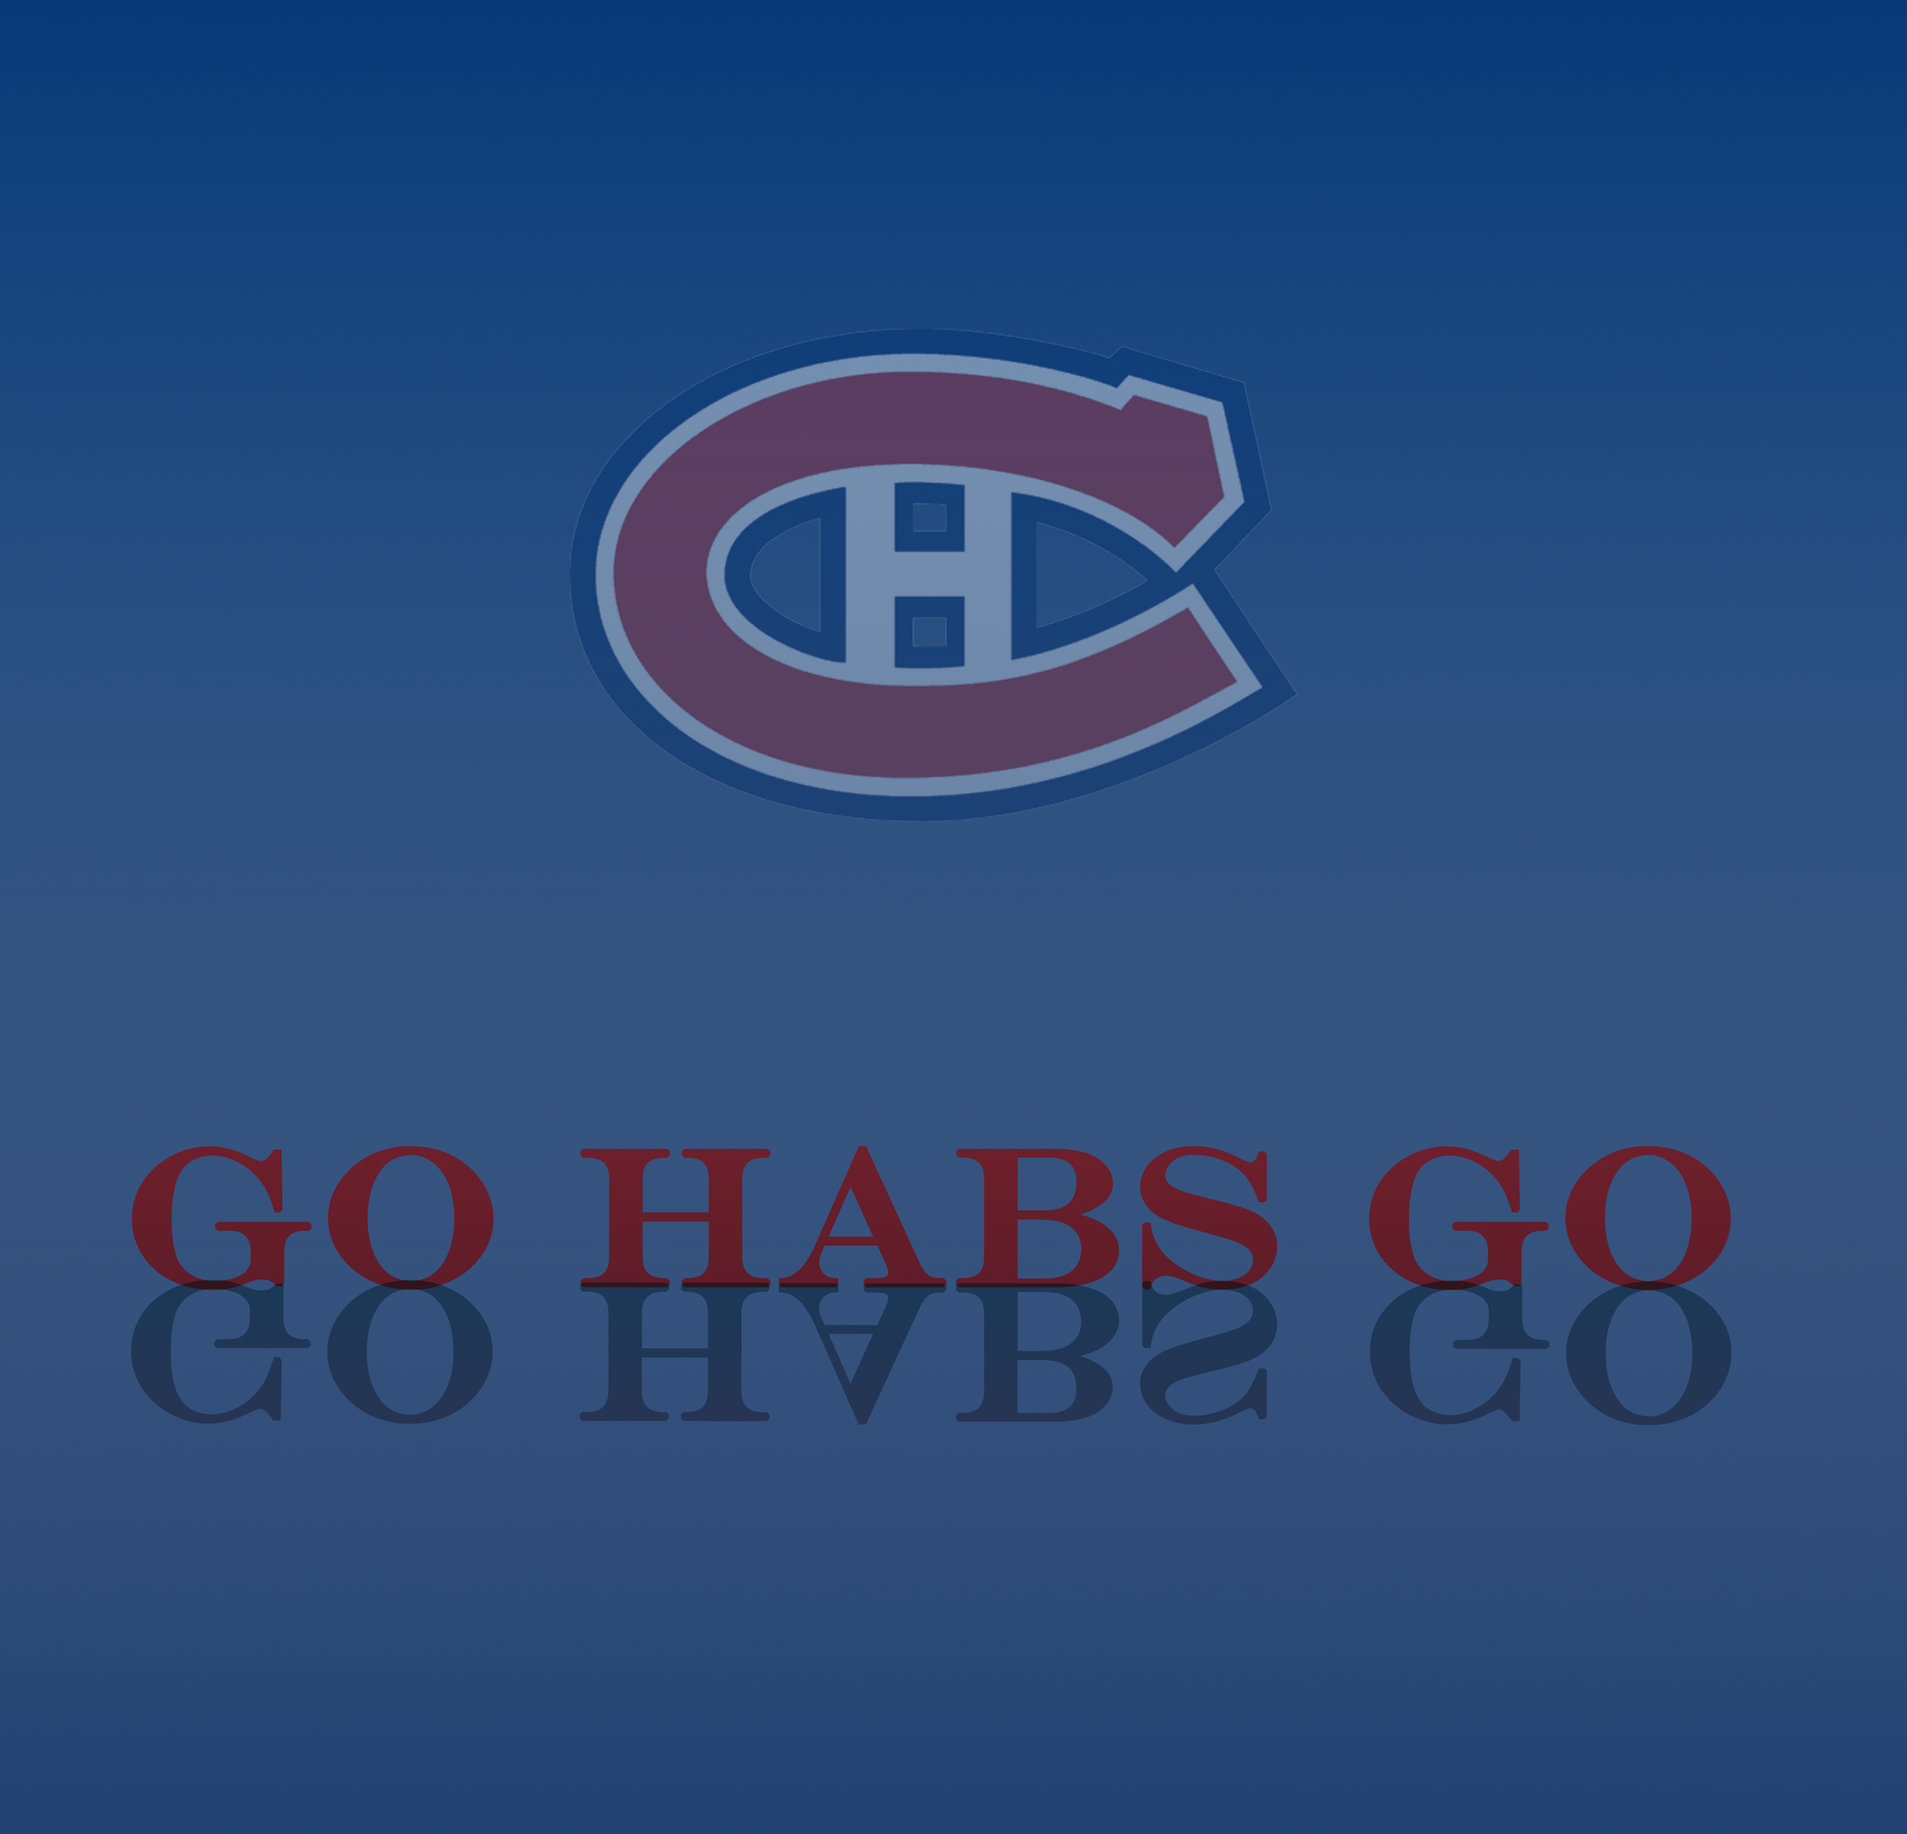 Go Habs Go Wallpaper by Levesque Phenomenal 1907x1834